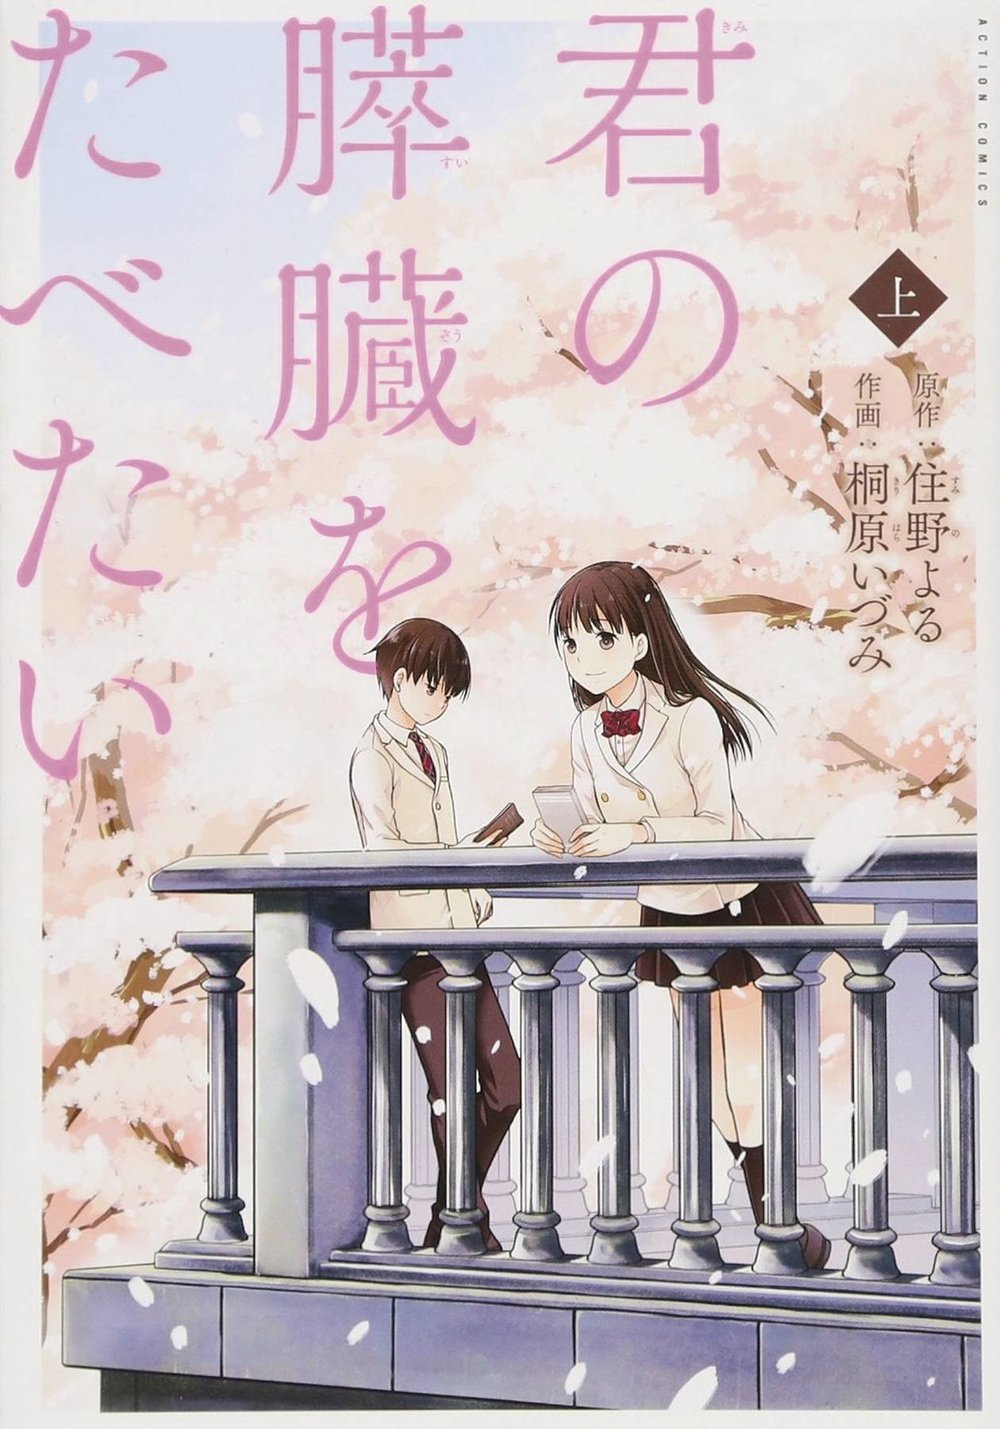 I WANT TO EAT YOUR PANCREAS GN 1.jpg